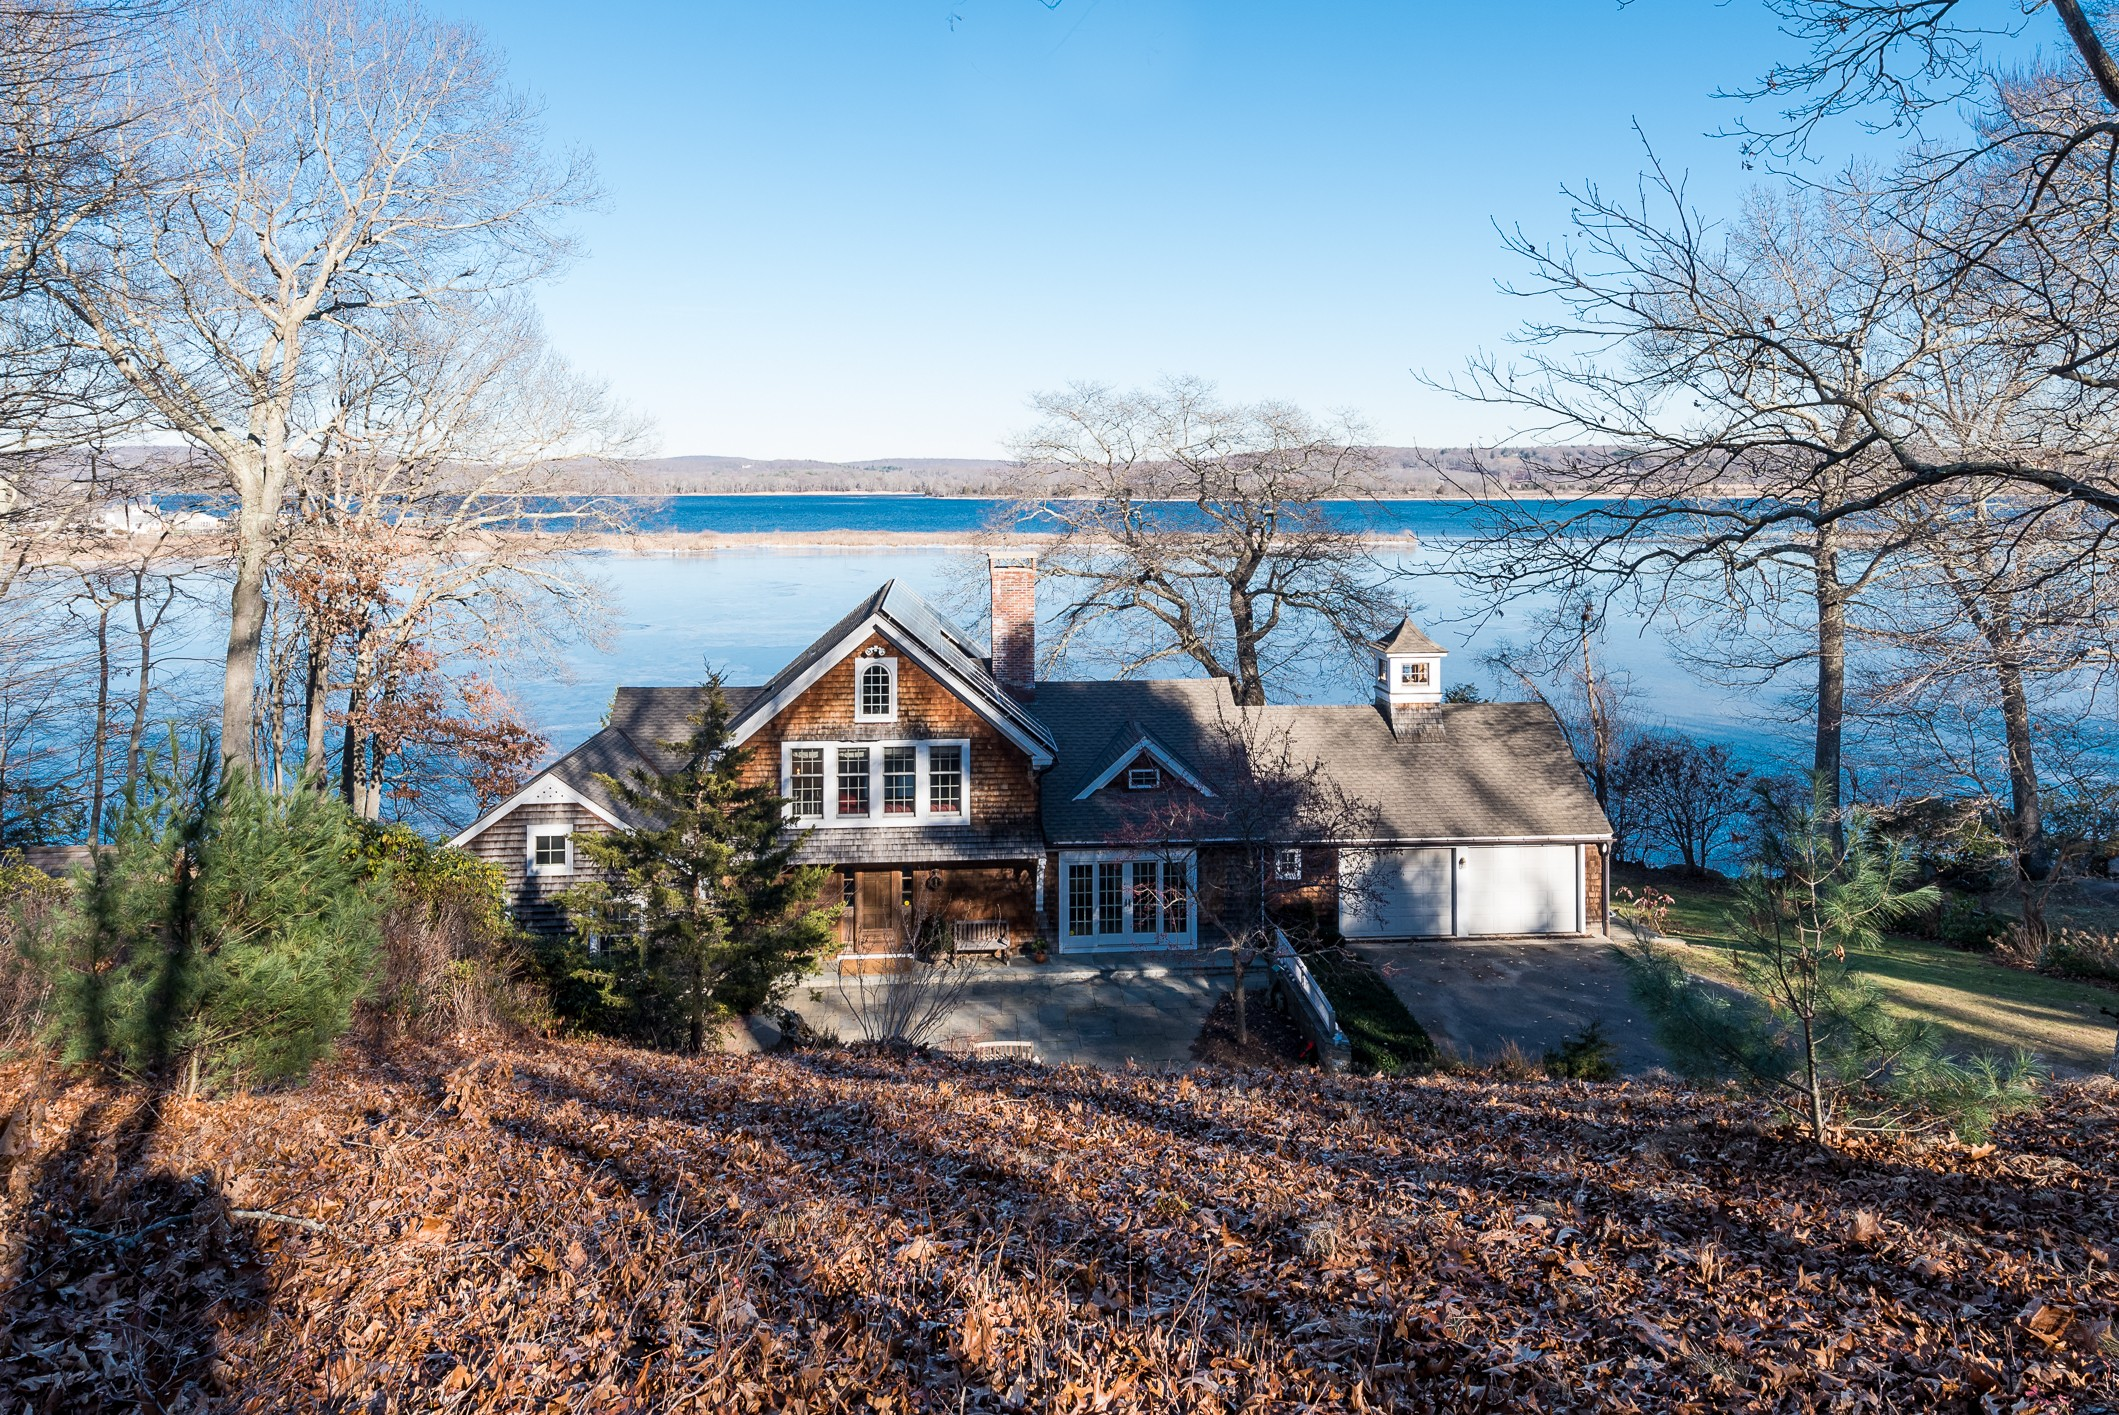 Villa per Vendita alle ore Direct Waterfront! Sweeping Views of CT River 50 Crosstrees Hill Rd Essex, Connecticut 06426 Stati Uniti